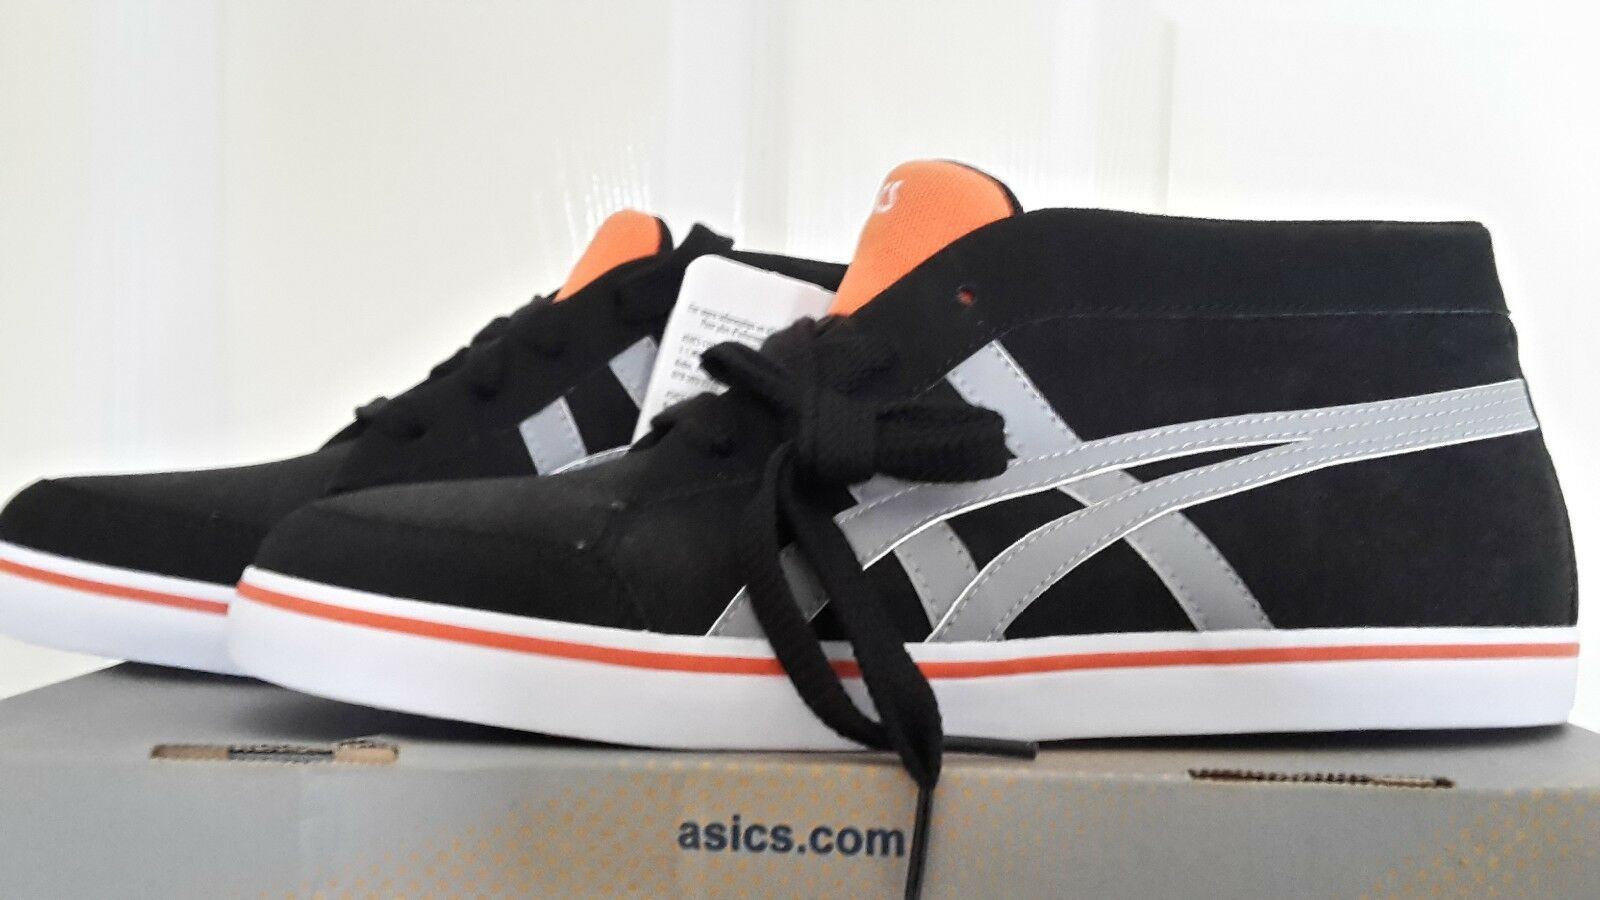 ASICS Sneakers 8 Trainers 8 Sneakers / 42.5 noir blanc Orange Buy New df0898